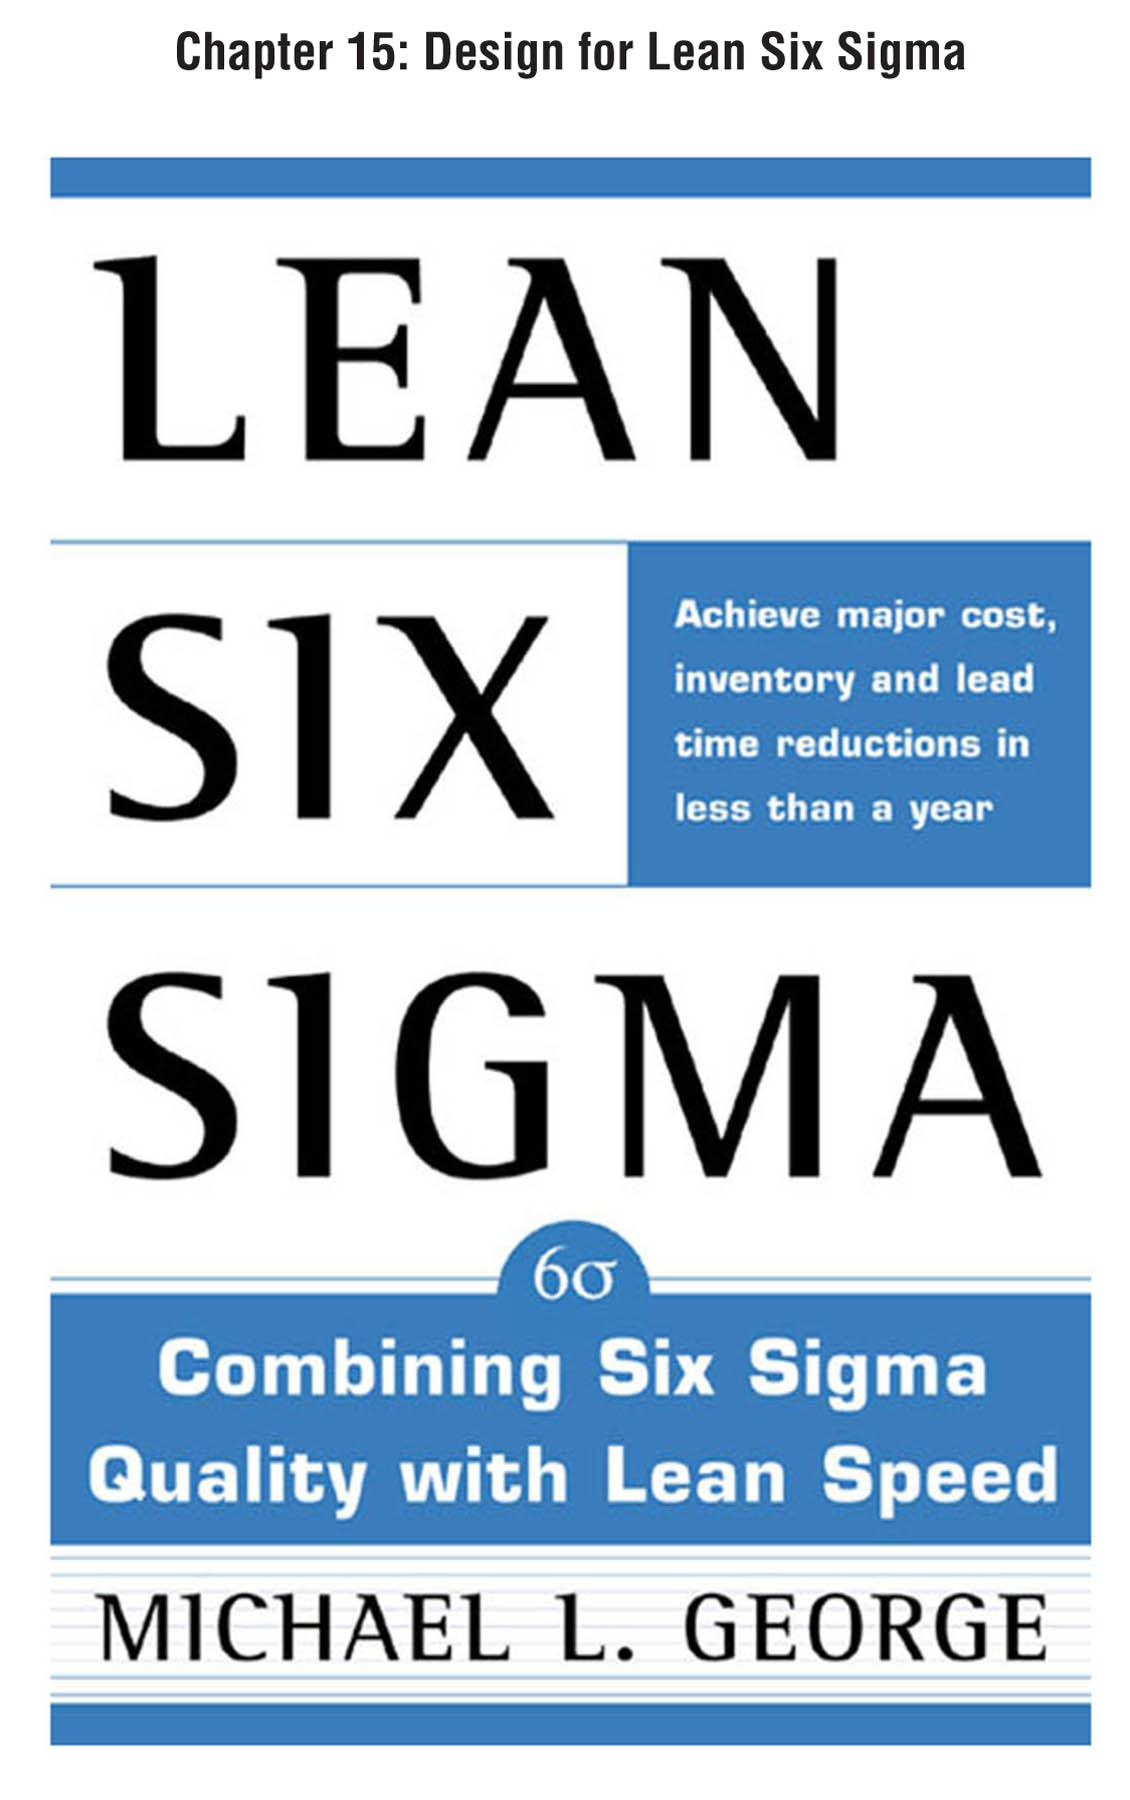 Lean Six Sigma, Chapter 15 - Design for Lean Six Sigma By: Michael George